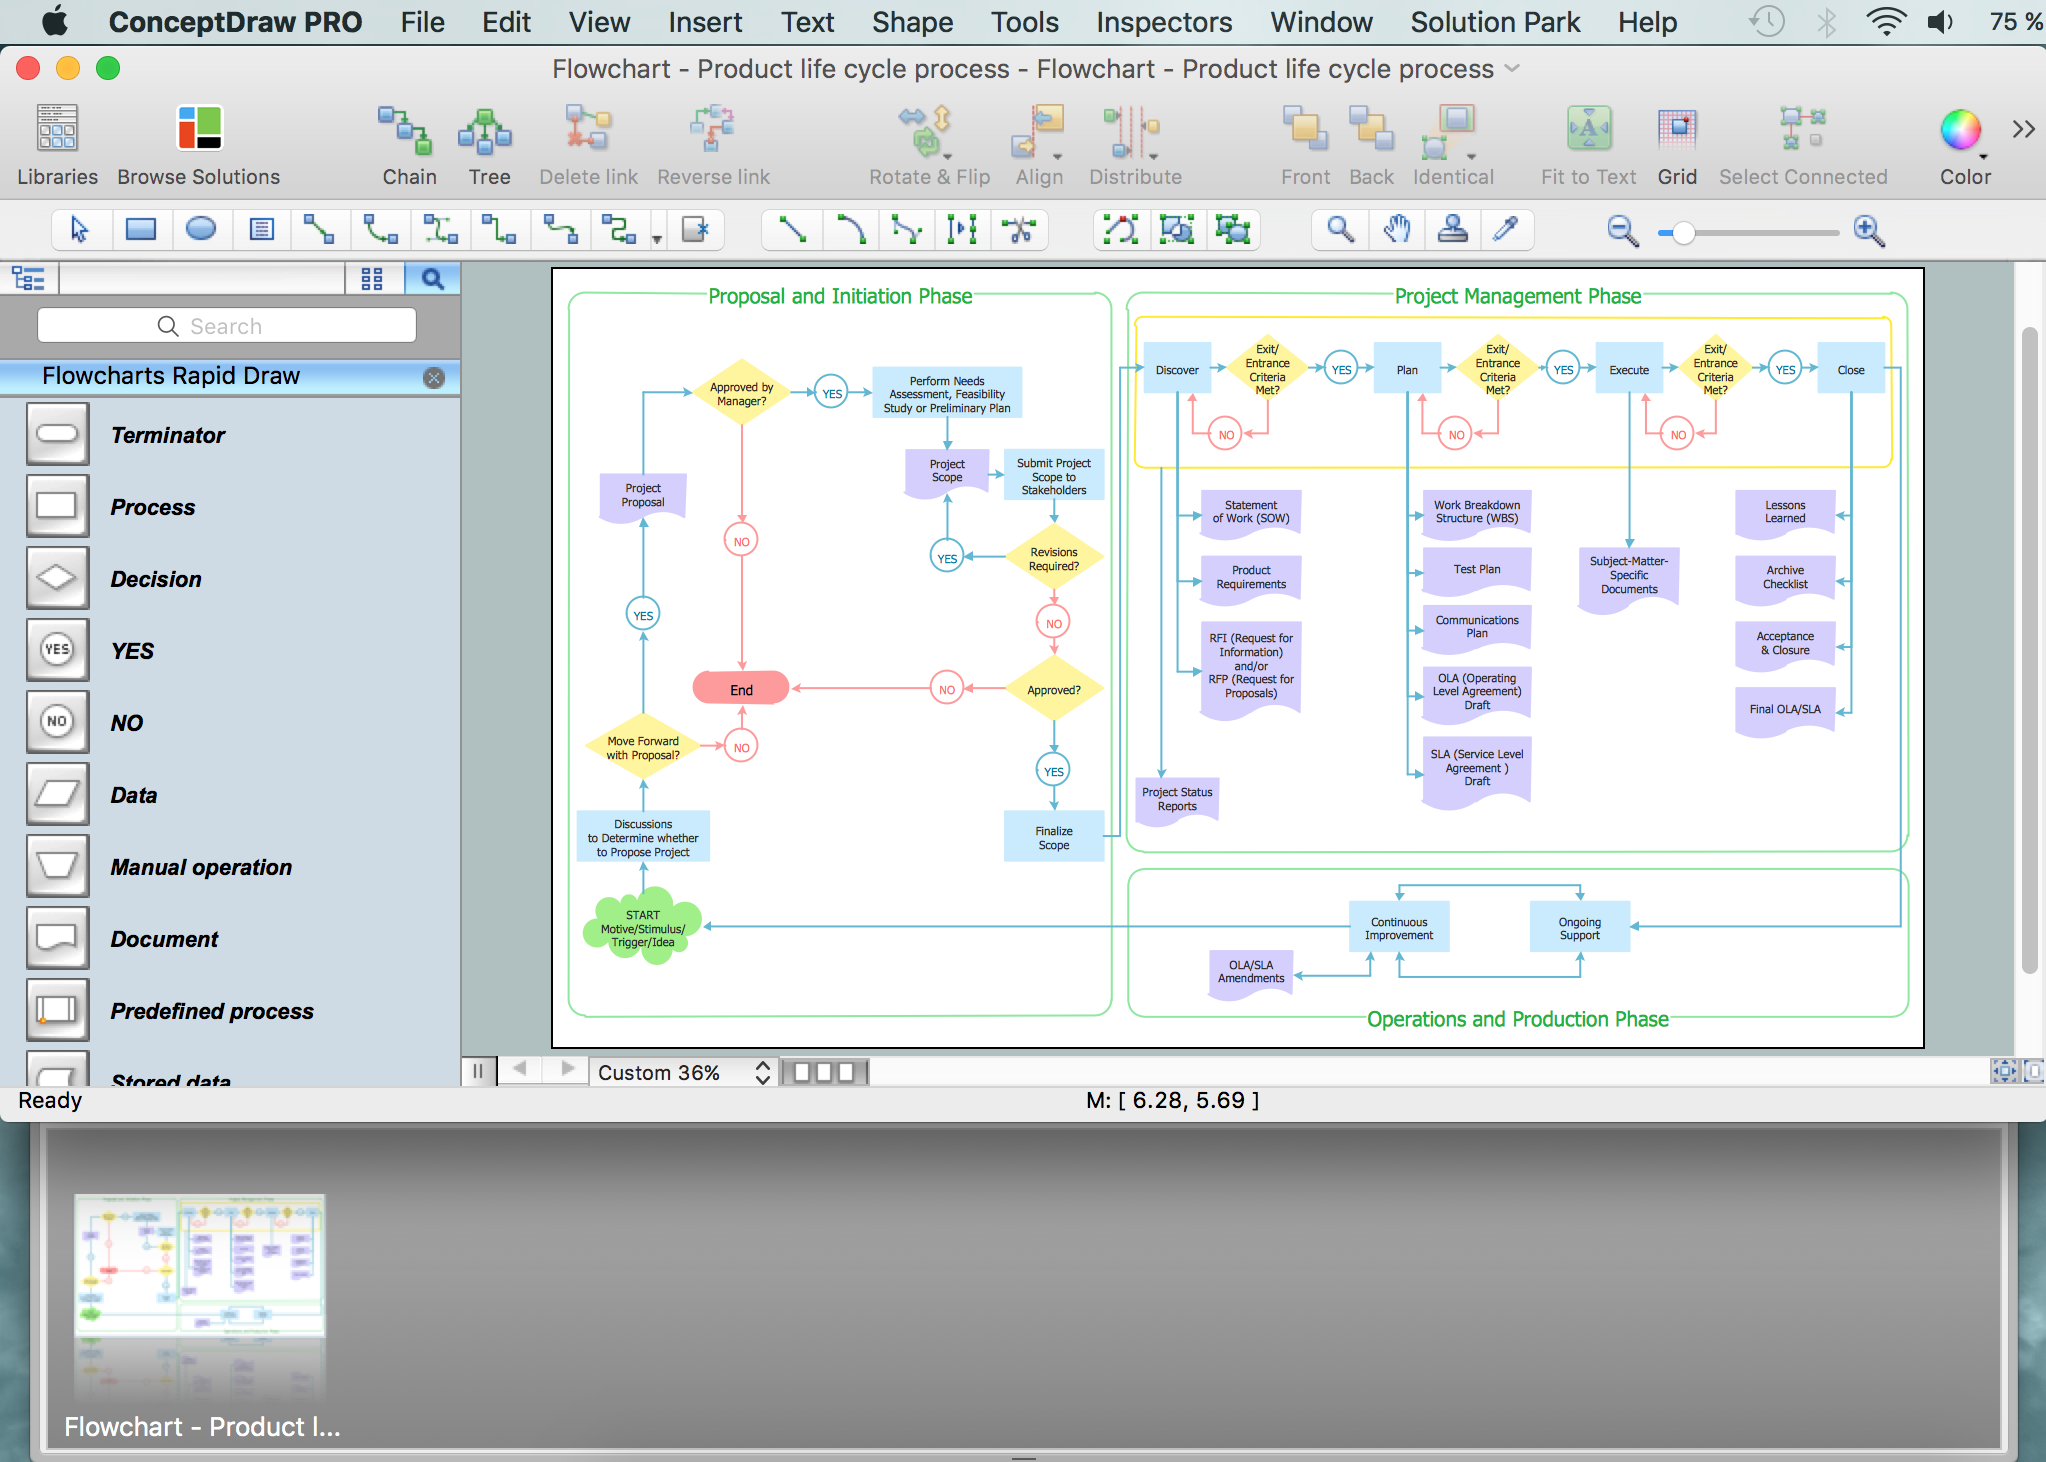 Flowchart Software. ConceptDraw DIAGRAM ...